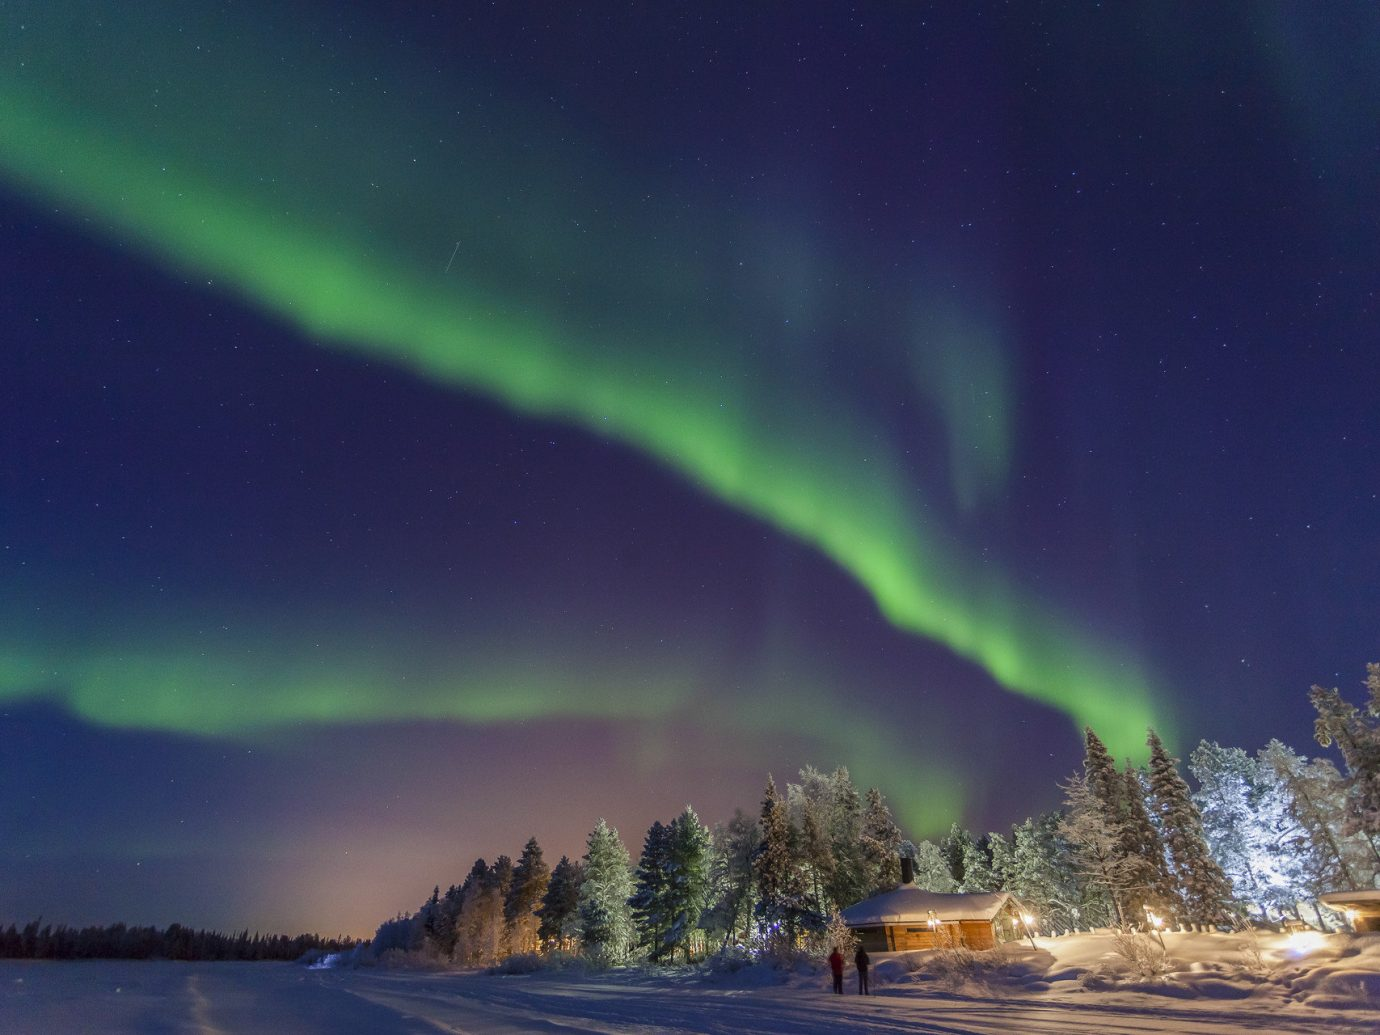 Adventure blue sky Boutique Hotels camping colorful Luxury Travel natural light Natural wonders Nature Night Sky northern lights Outdoor Activities Romance sky trees Trip Ideas view views Winter outdoor aurora phenomenon atmosphere